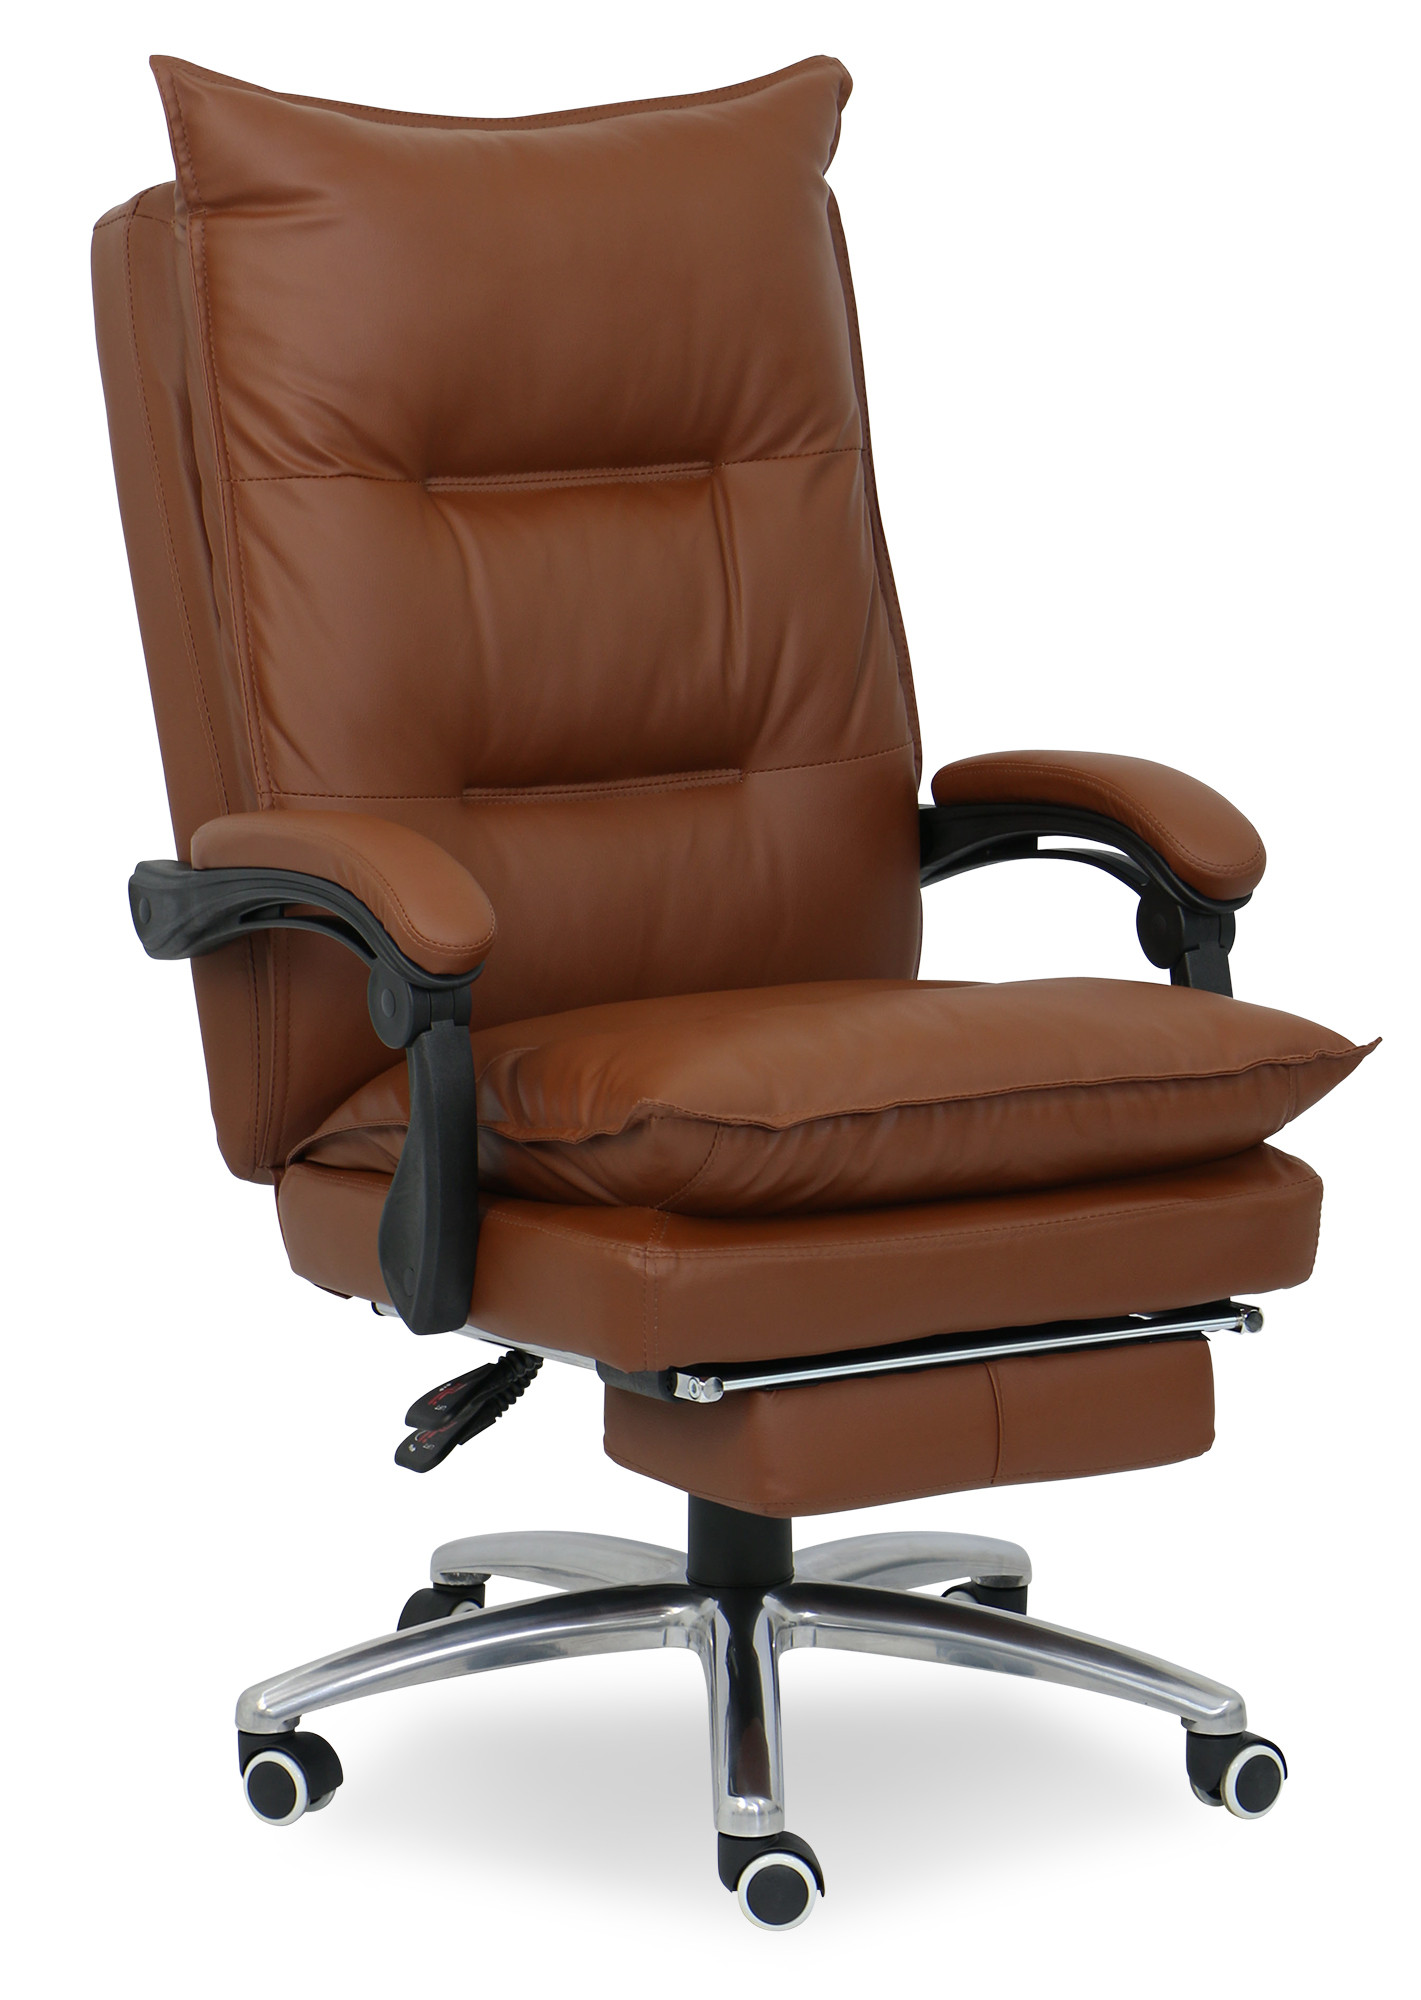 Deluxe Pu Executive Office Chair Brown  Furniture